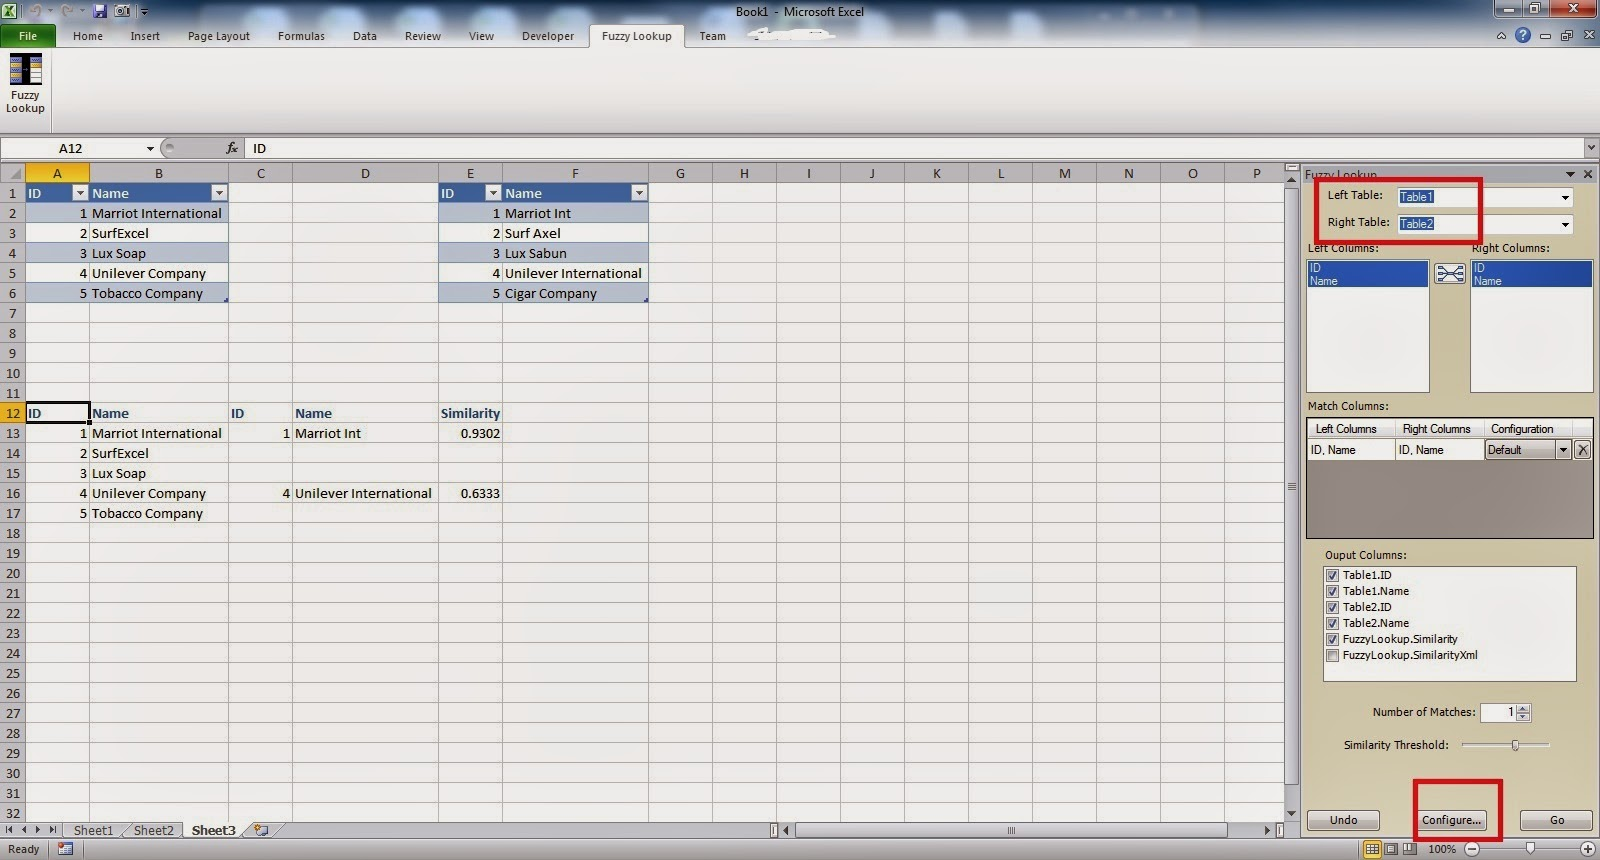 Amiq S Excel Learning Excel Fuzzy Lookup Add In Approximate Data Match